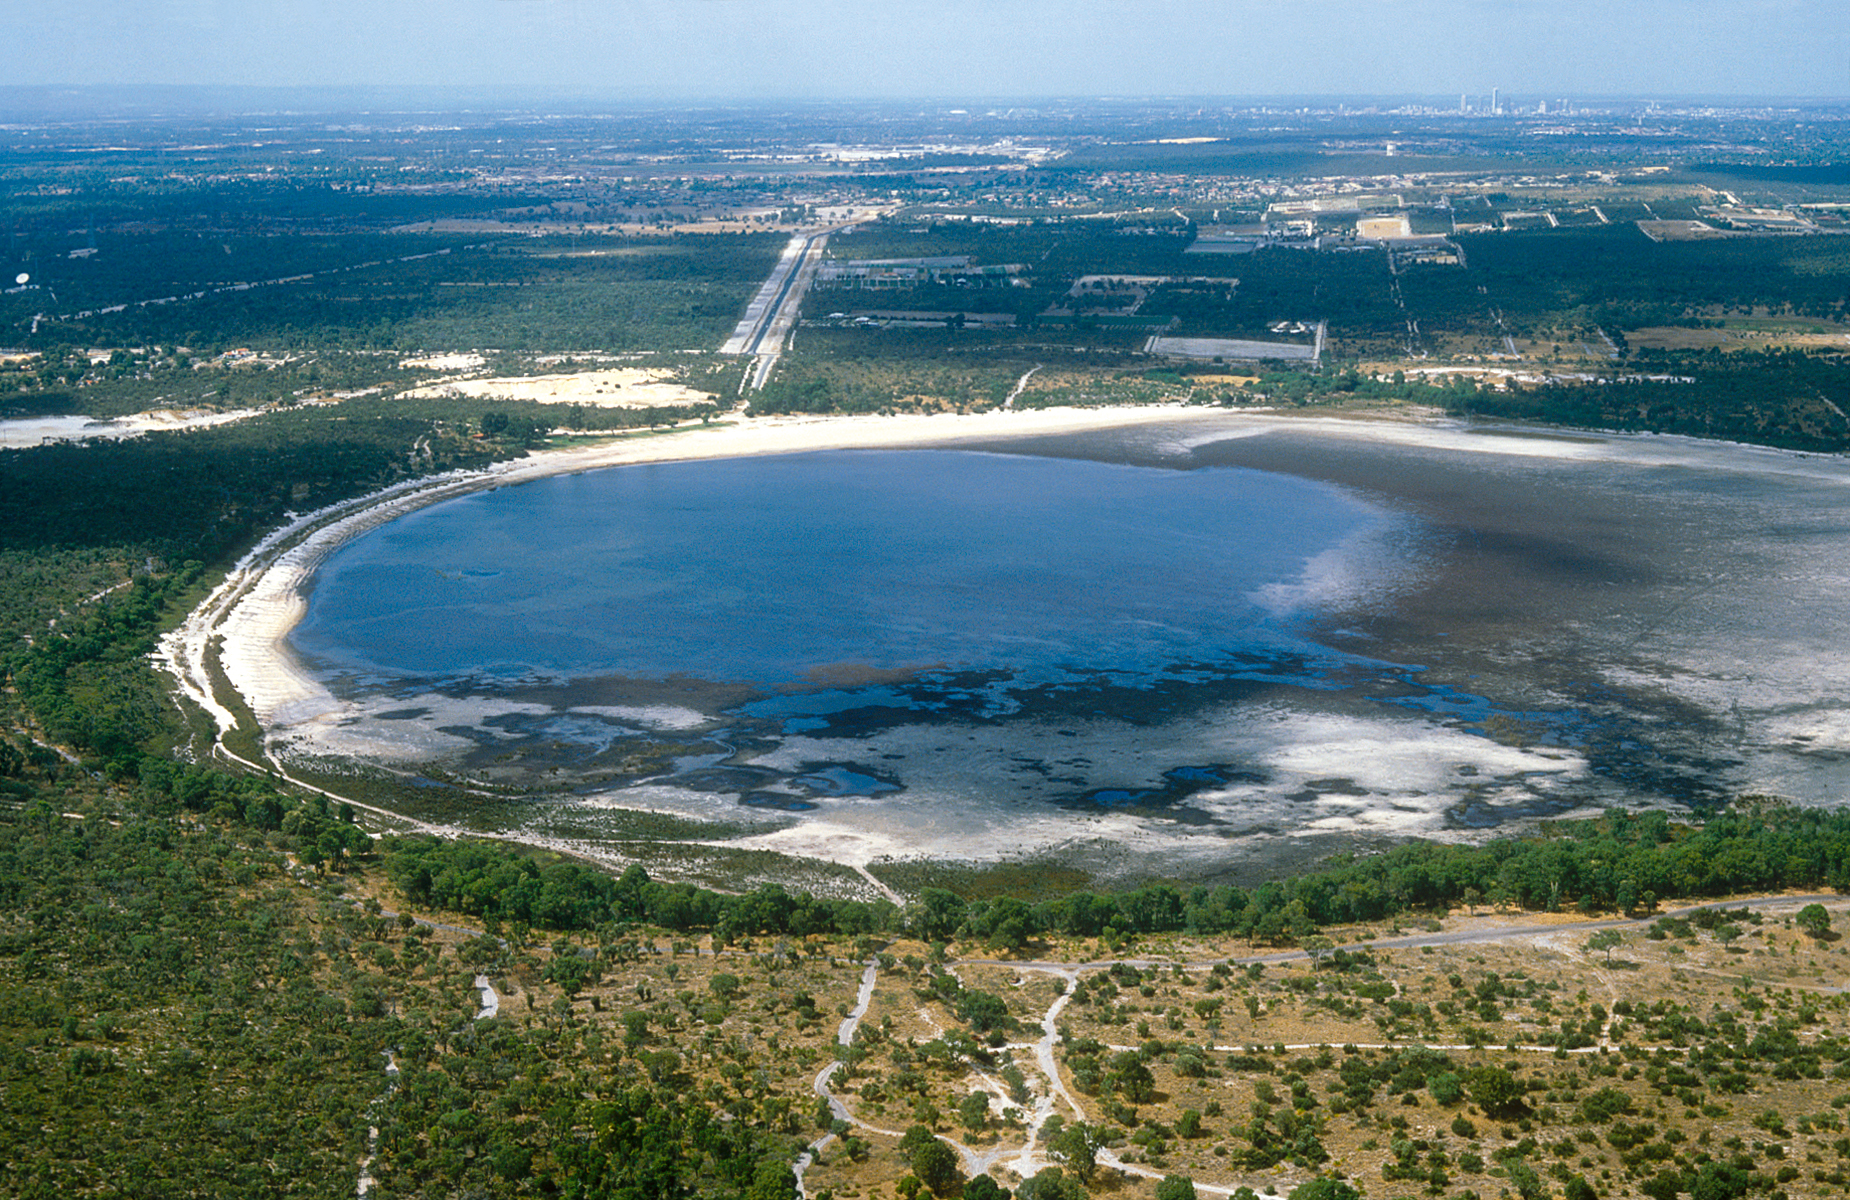 Small groundwater lake in foreground with Perth suburbs in background